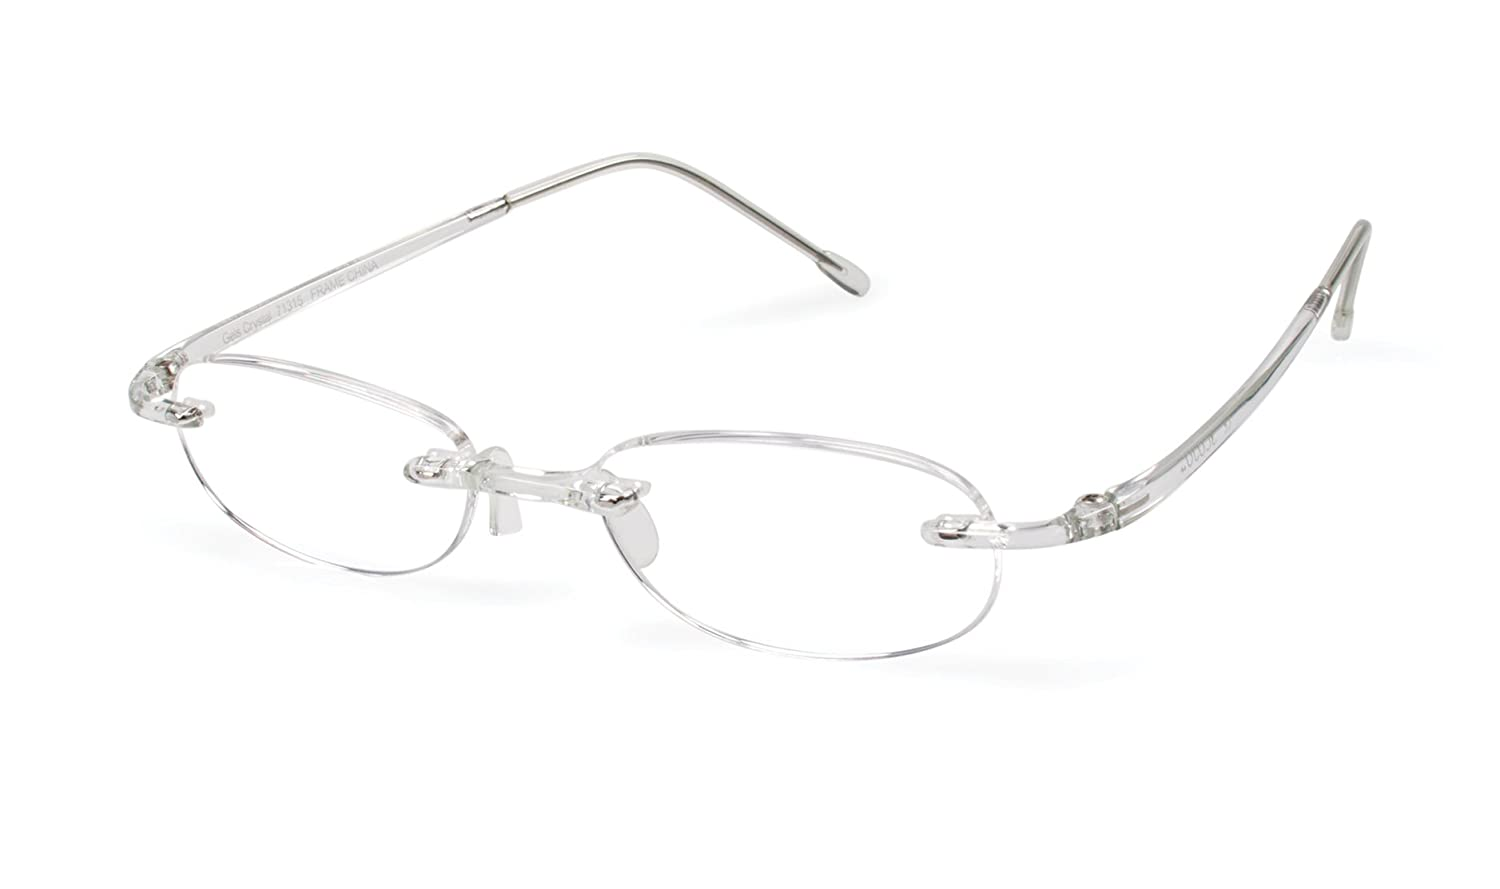 Amazon.com: Gels - Lightweight Rimless Fashion Readers - The ...